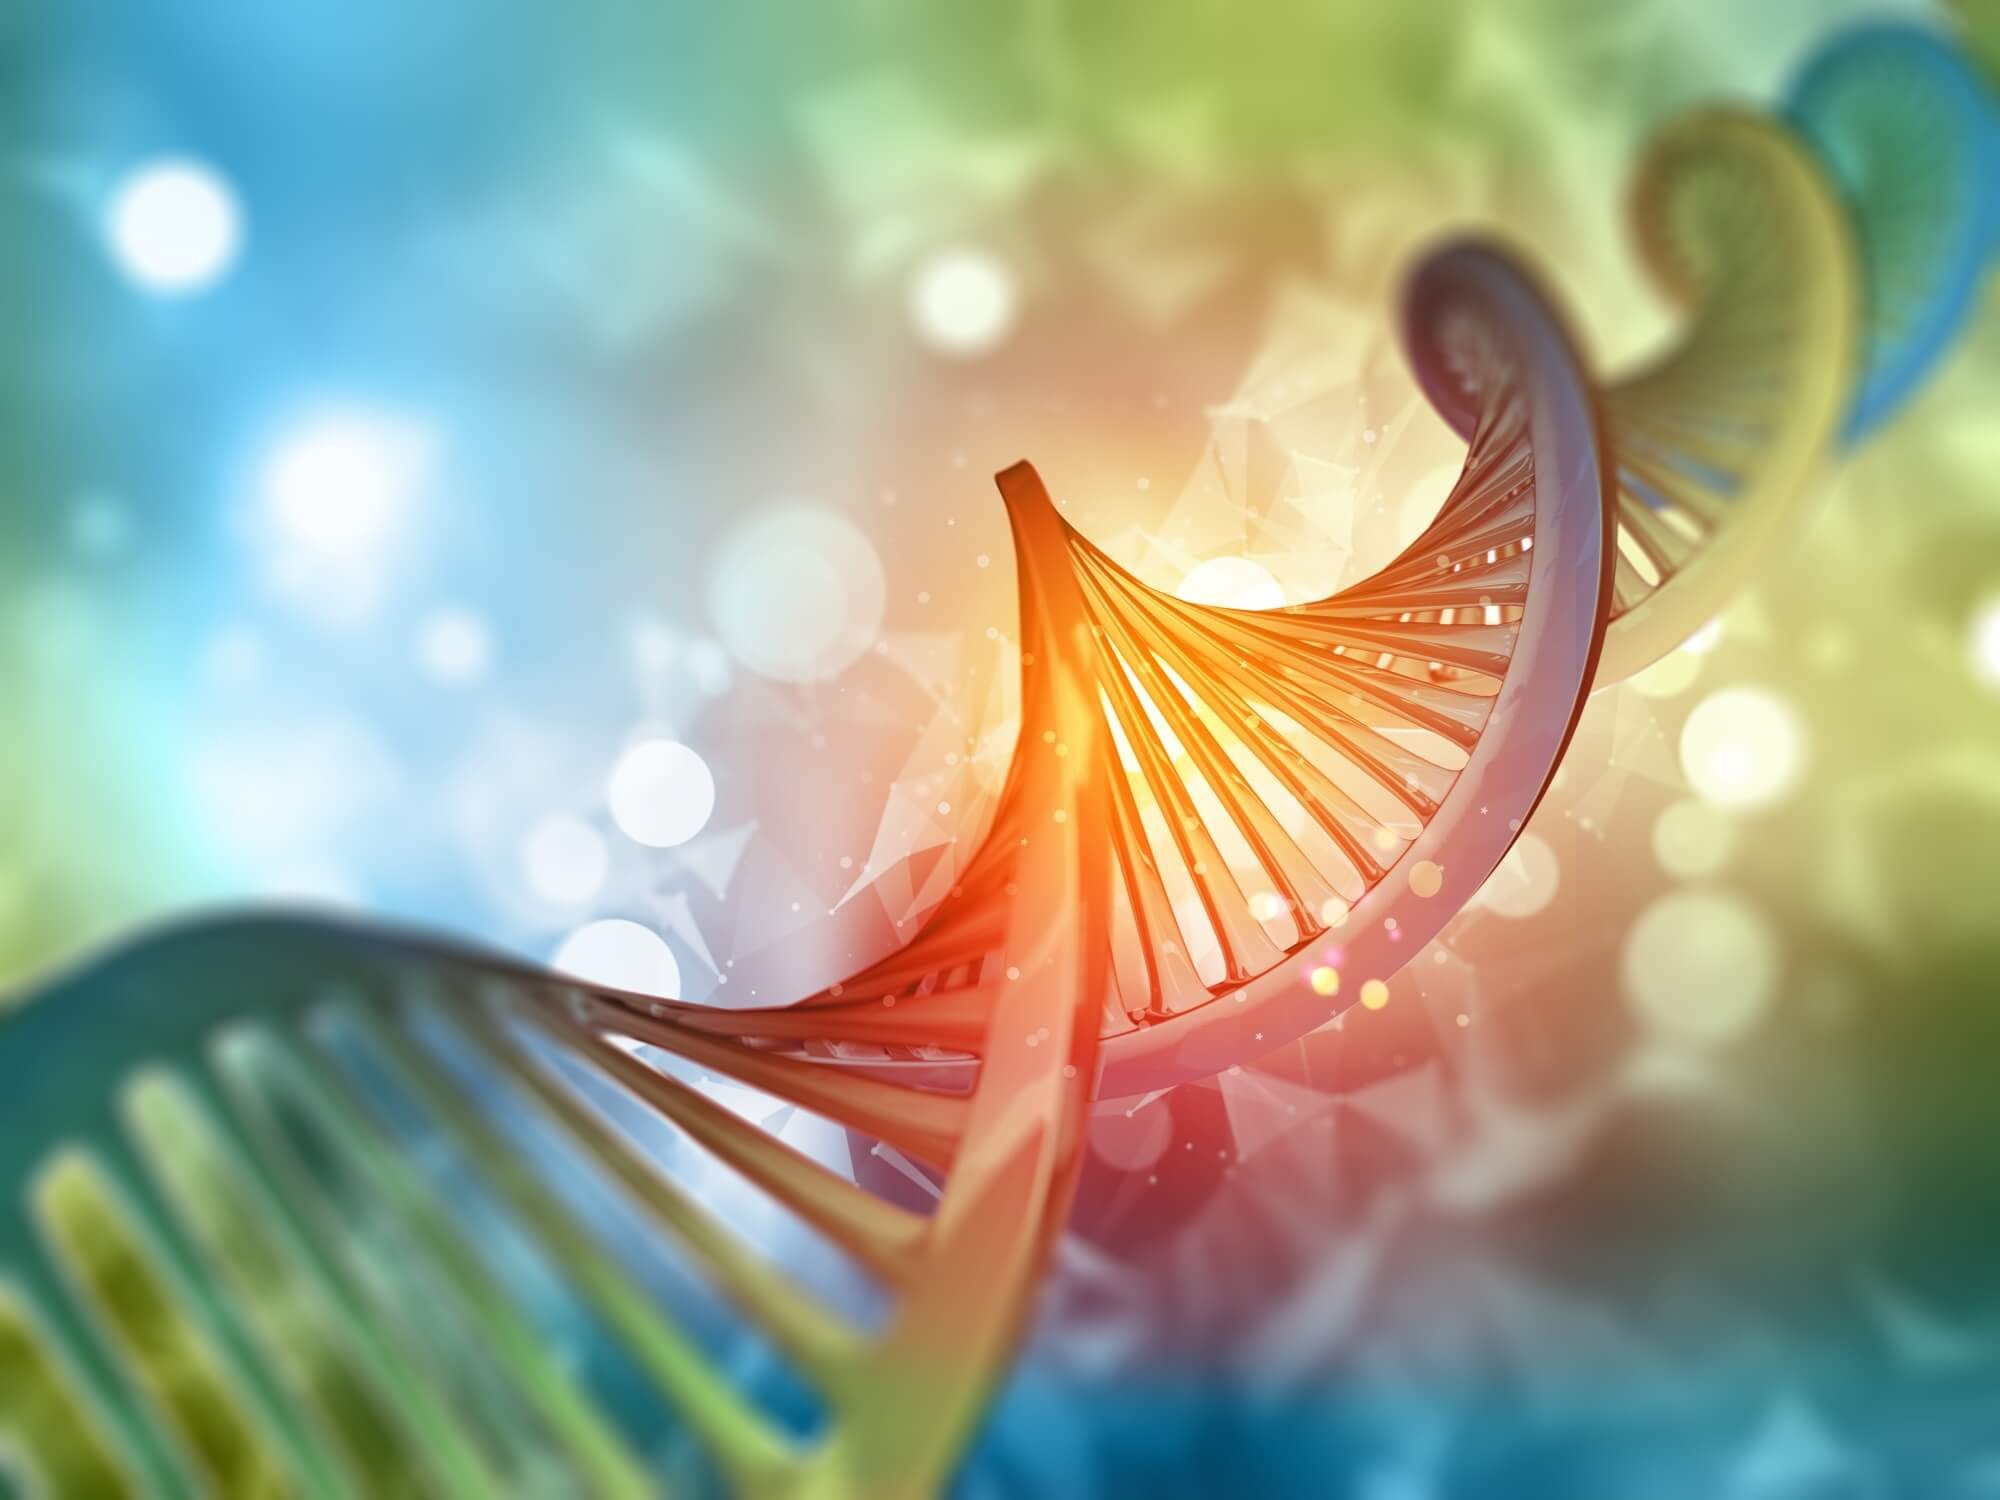 Genetic Variations Between Alcohol Consumption and Alcohol Use Disorder